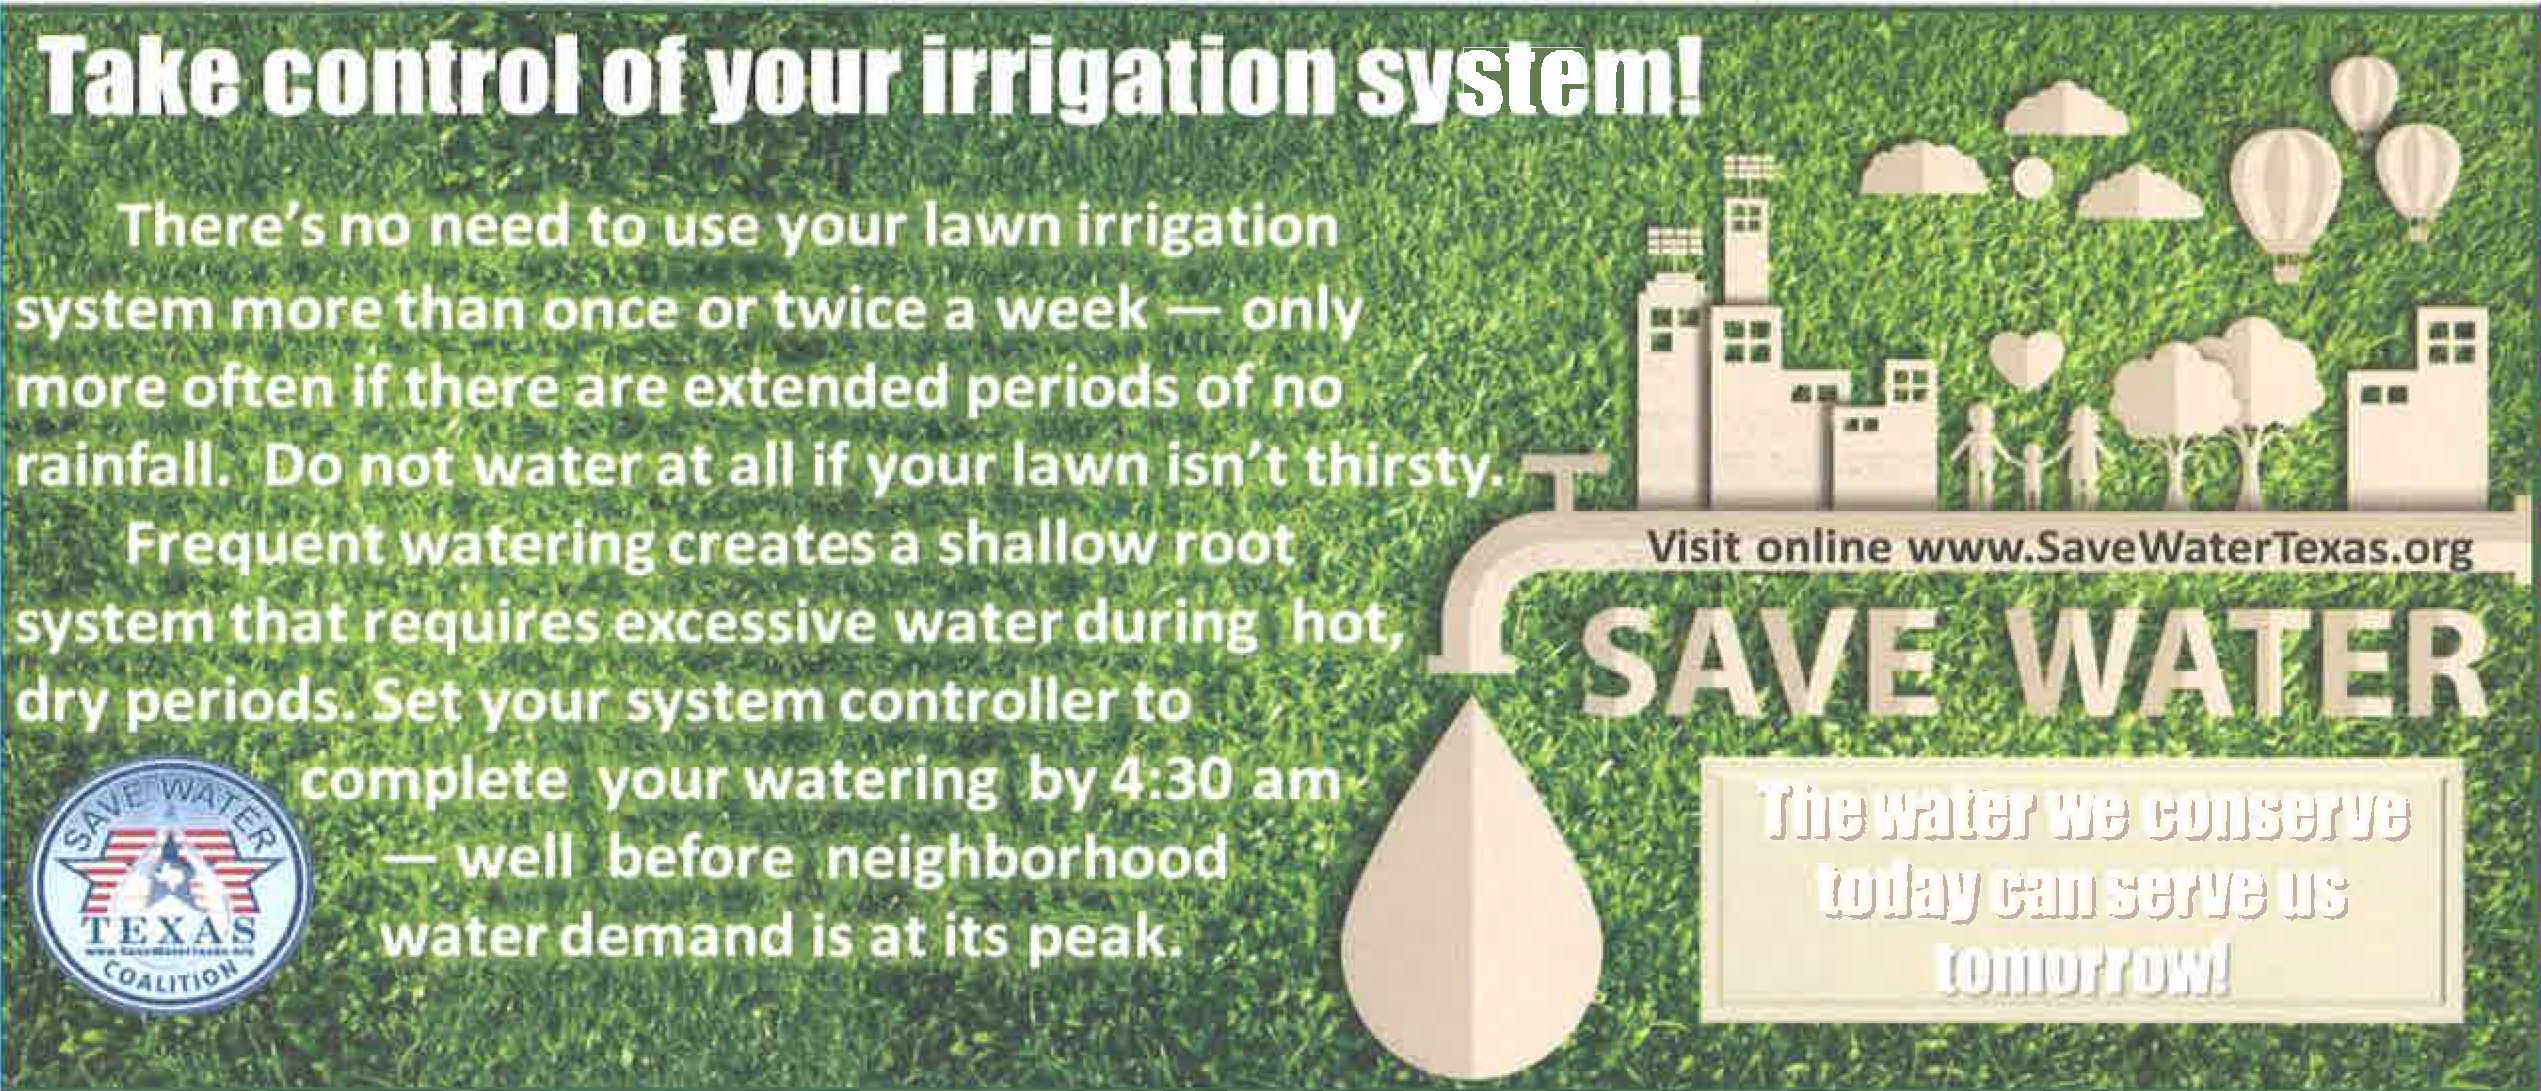 chimneyhillmud_irrigation_flyer